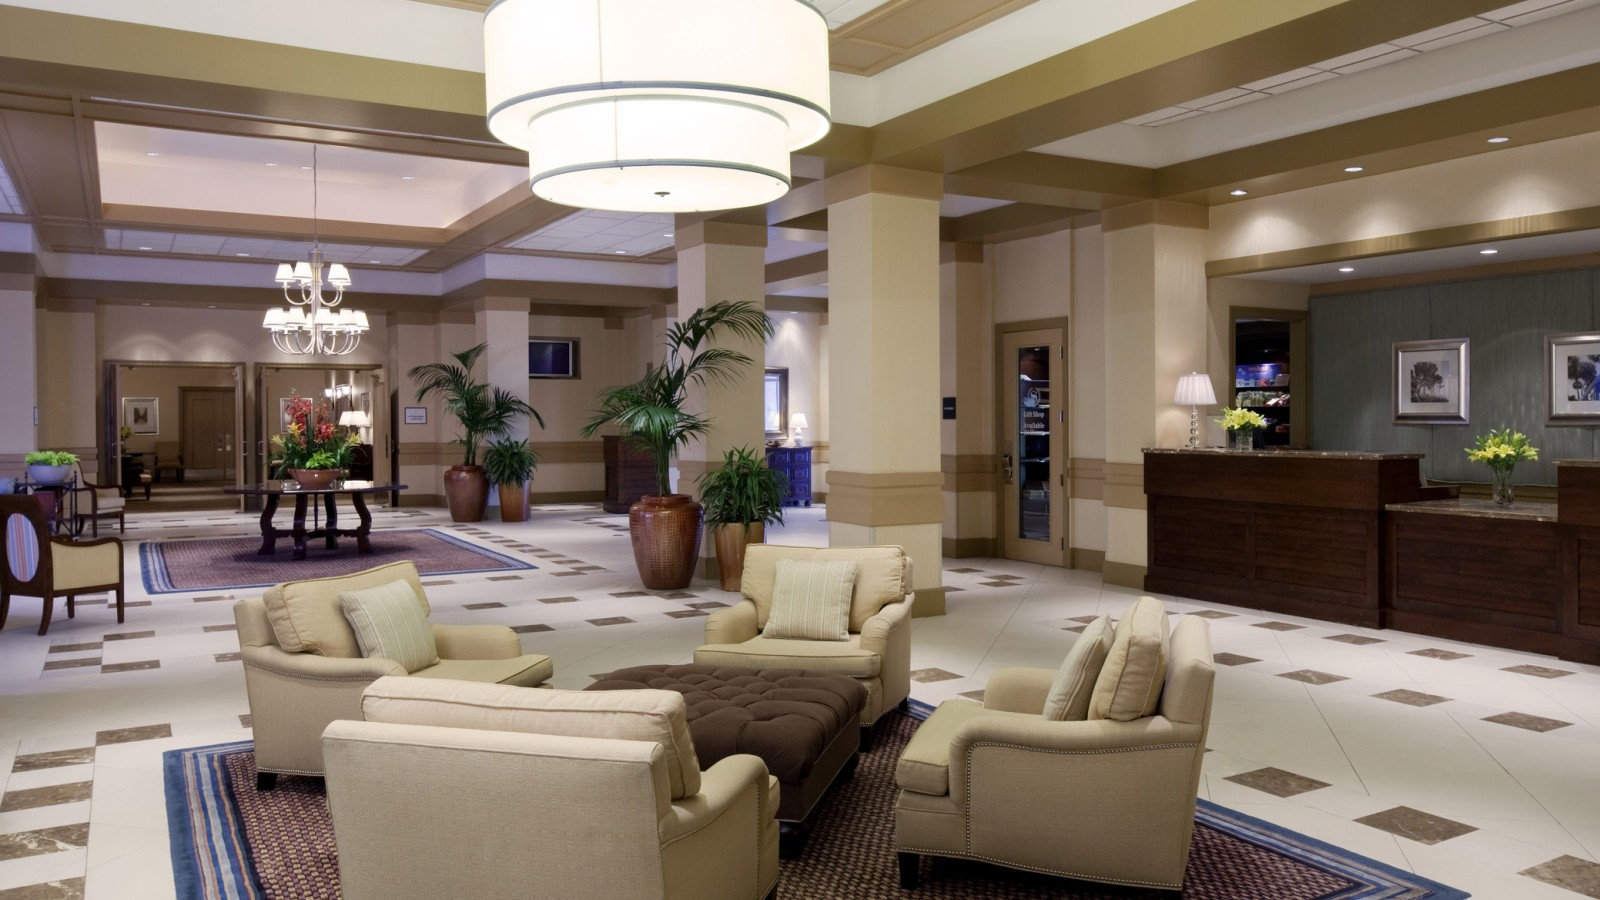 Additional Amenities at Sheraton Suites Fort Lauderdale Plantation